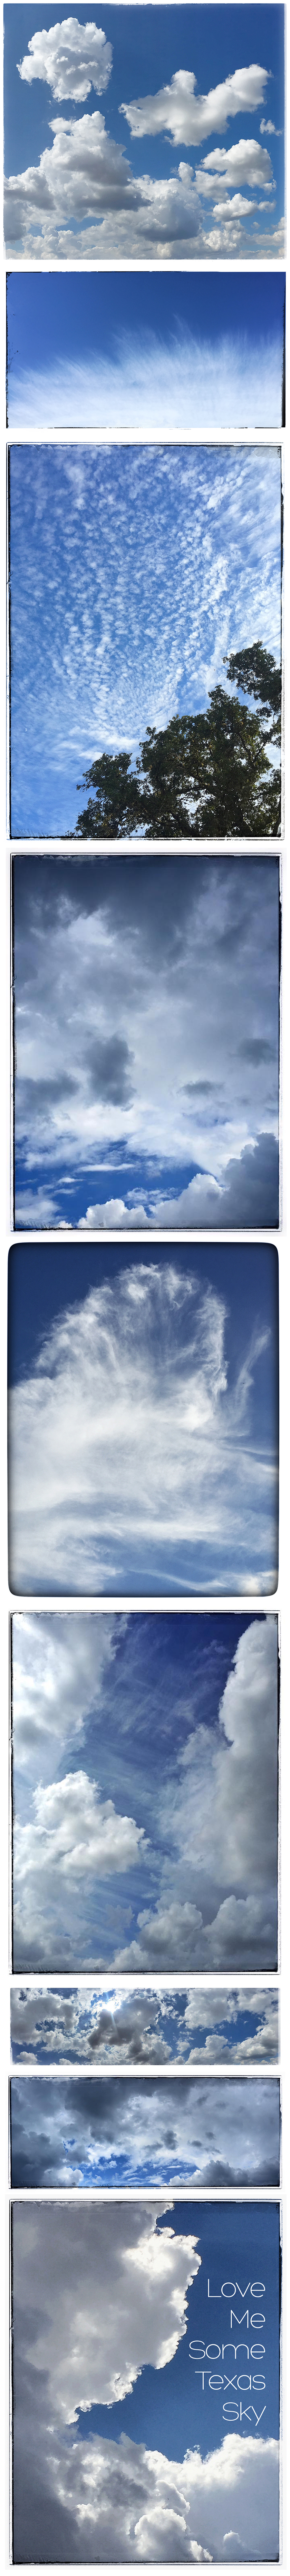 Texas Sky Collage